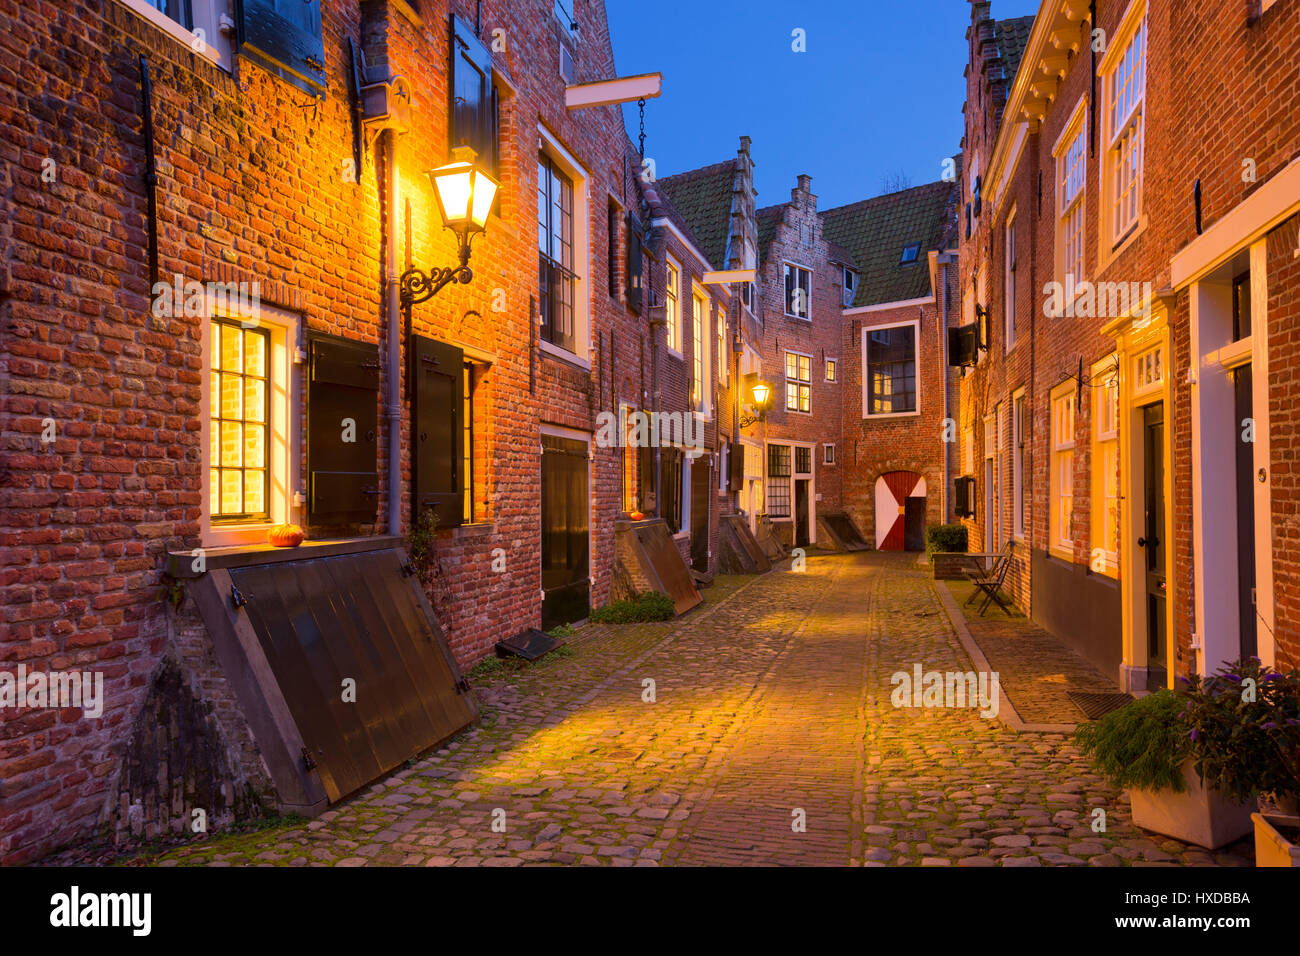 The historic alley of Kuiperspoort in Middelburg, The Netherlands at night. Stock Photo